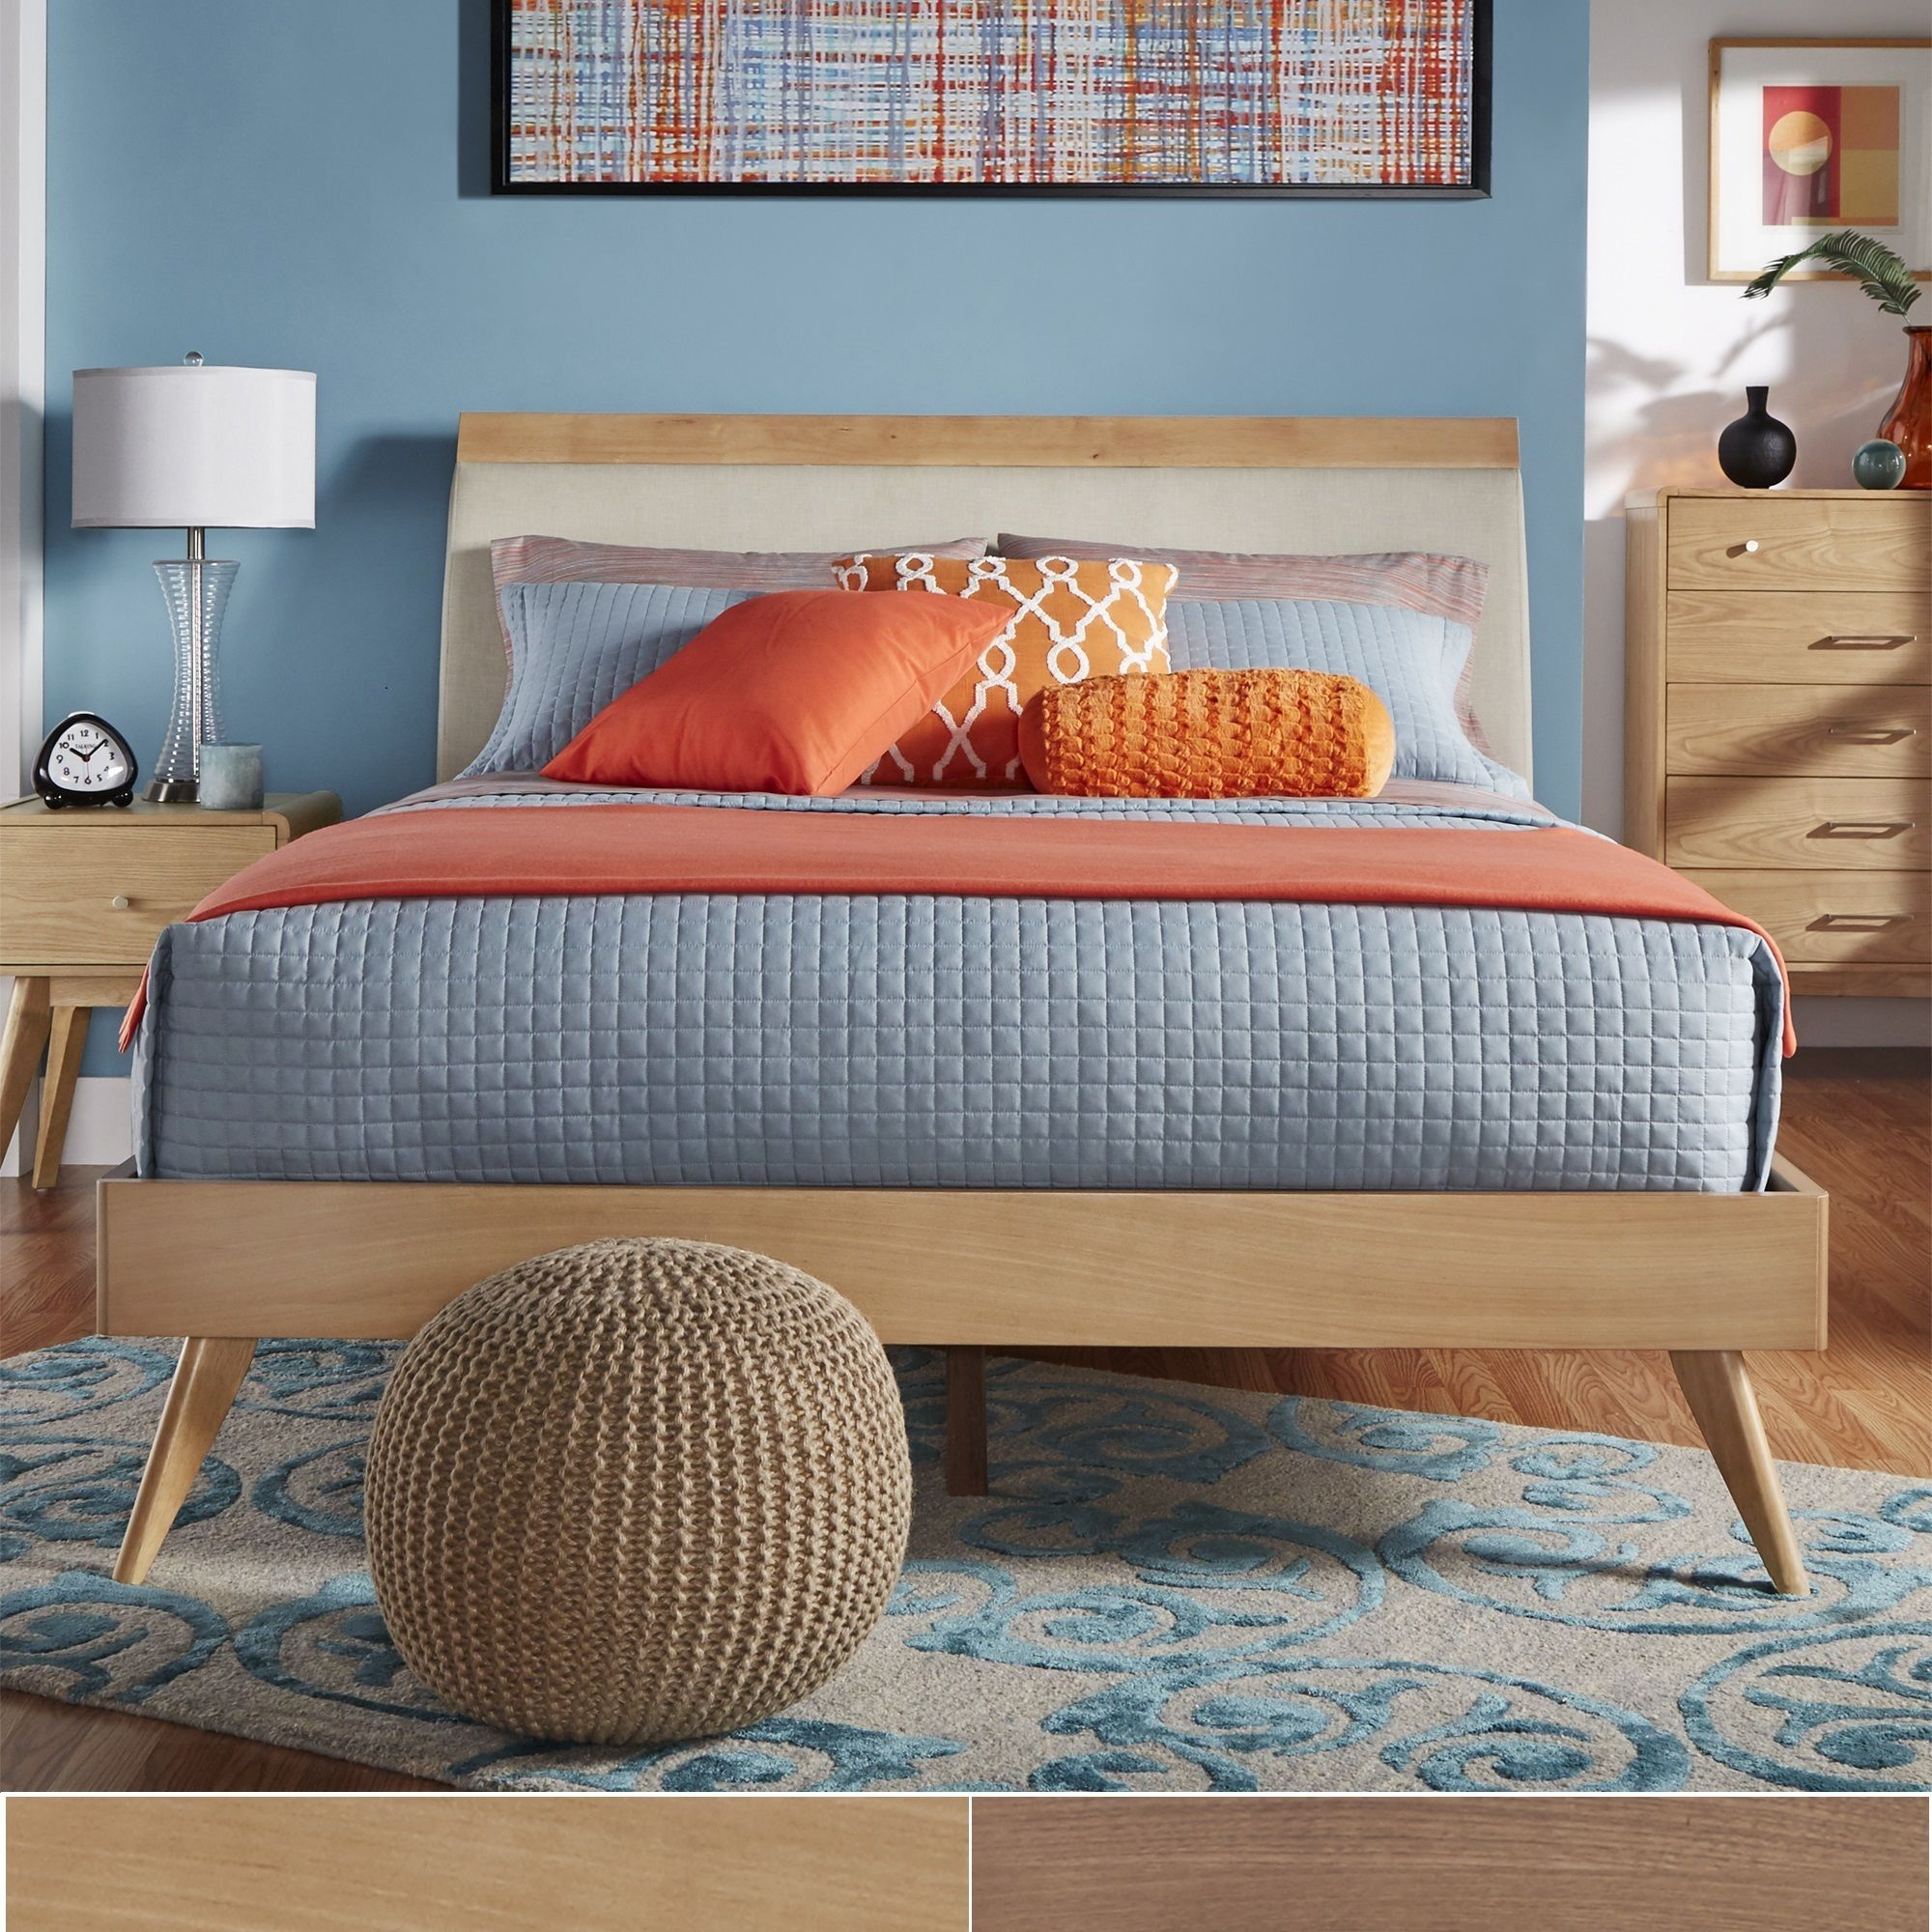 Best 15 Mid Century Modern Bedroom Things You Need To Create 400 x 300